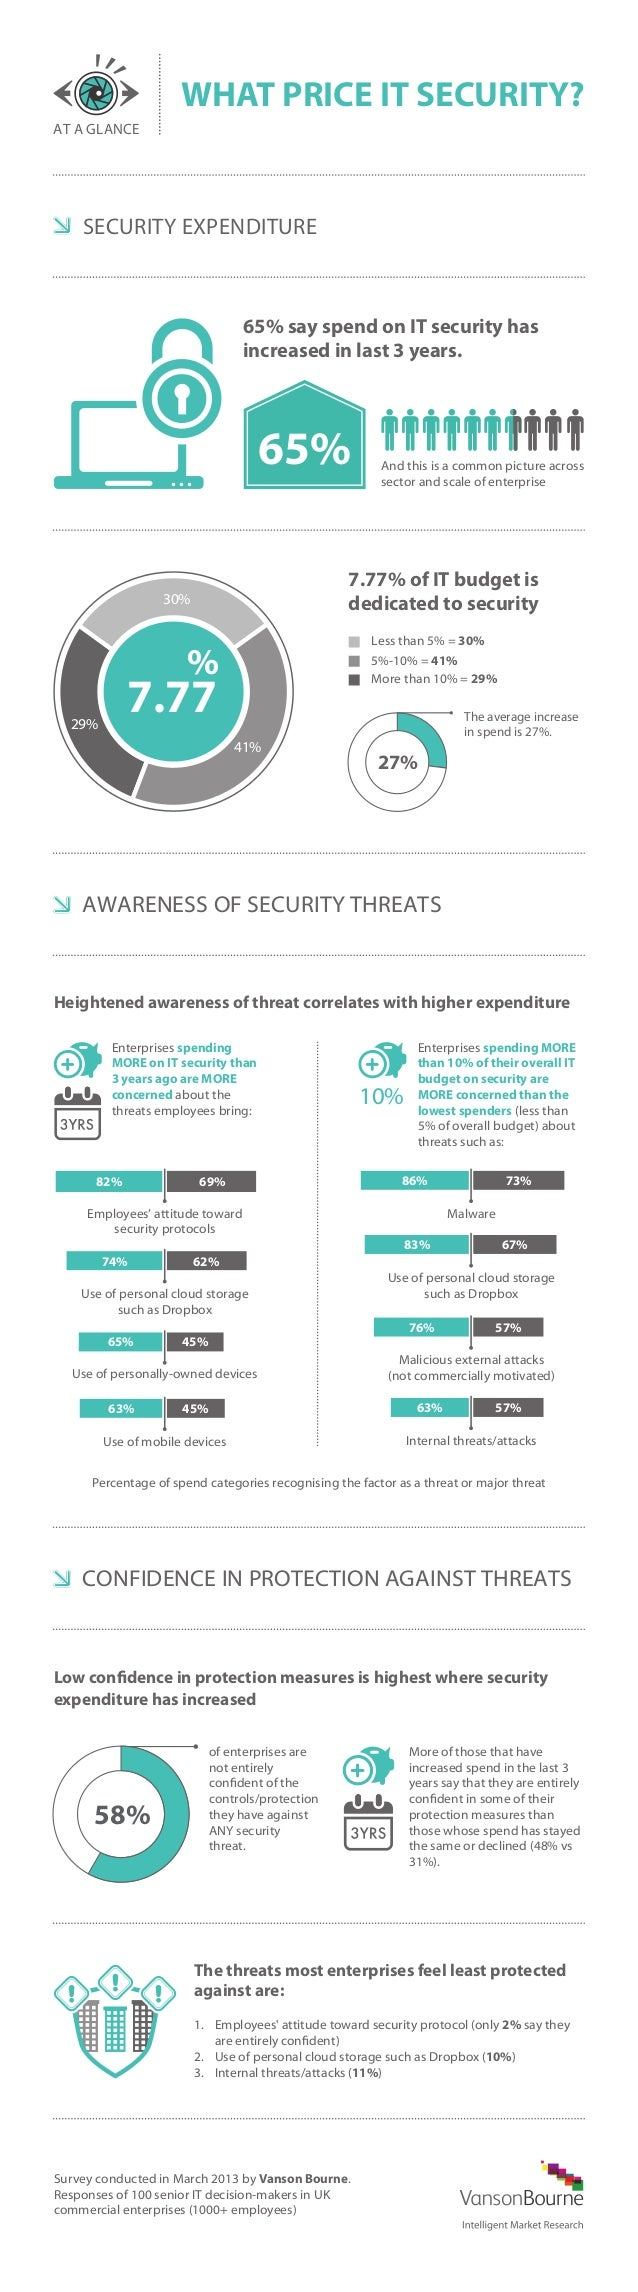 WHAT PRICE IT SECURITY? AT A GLANCE  SECURITY EXPENDITURE  65% say spend on IT security has increased in last 3 years.  65...